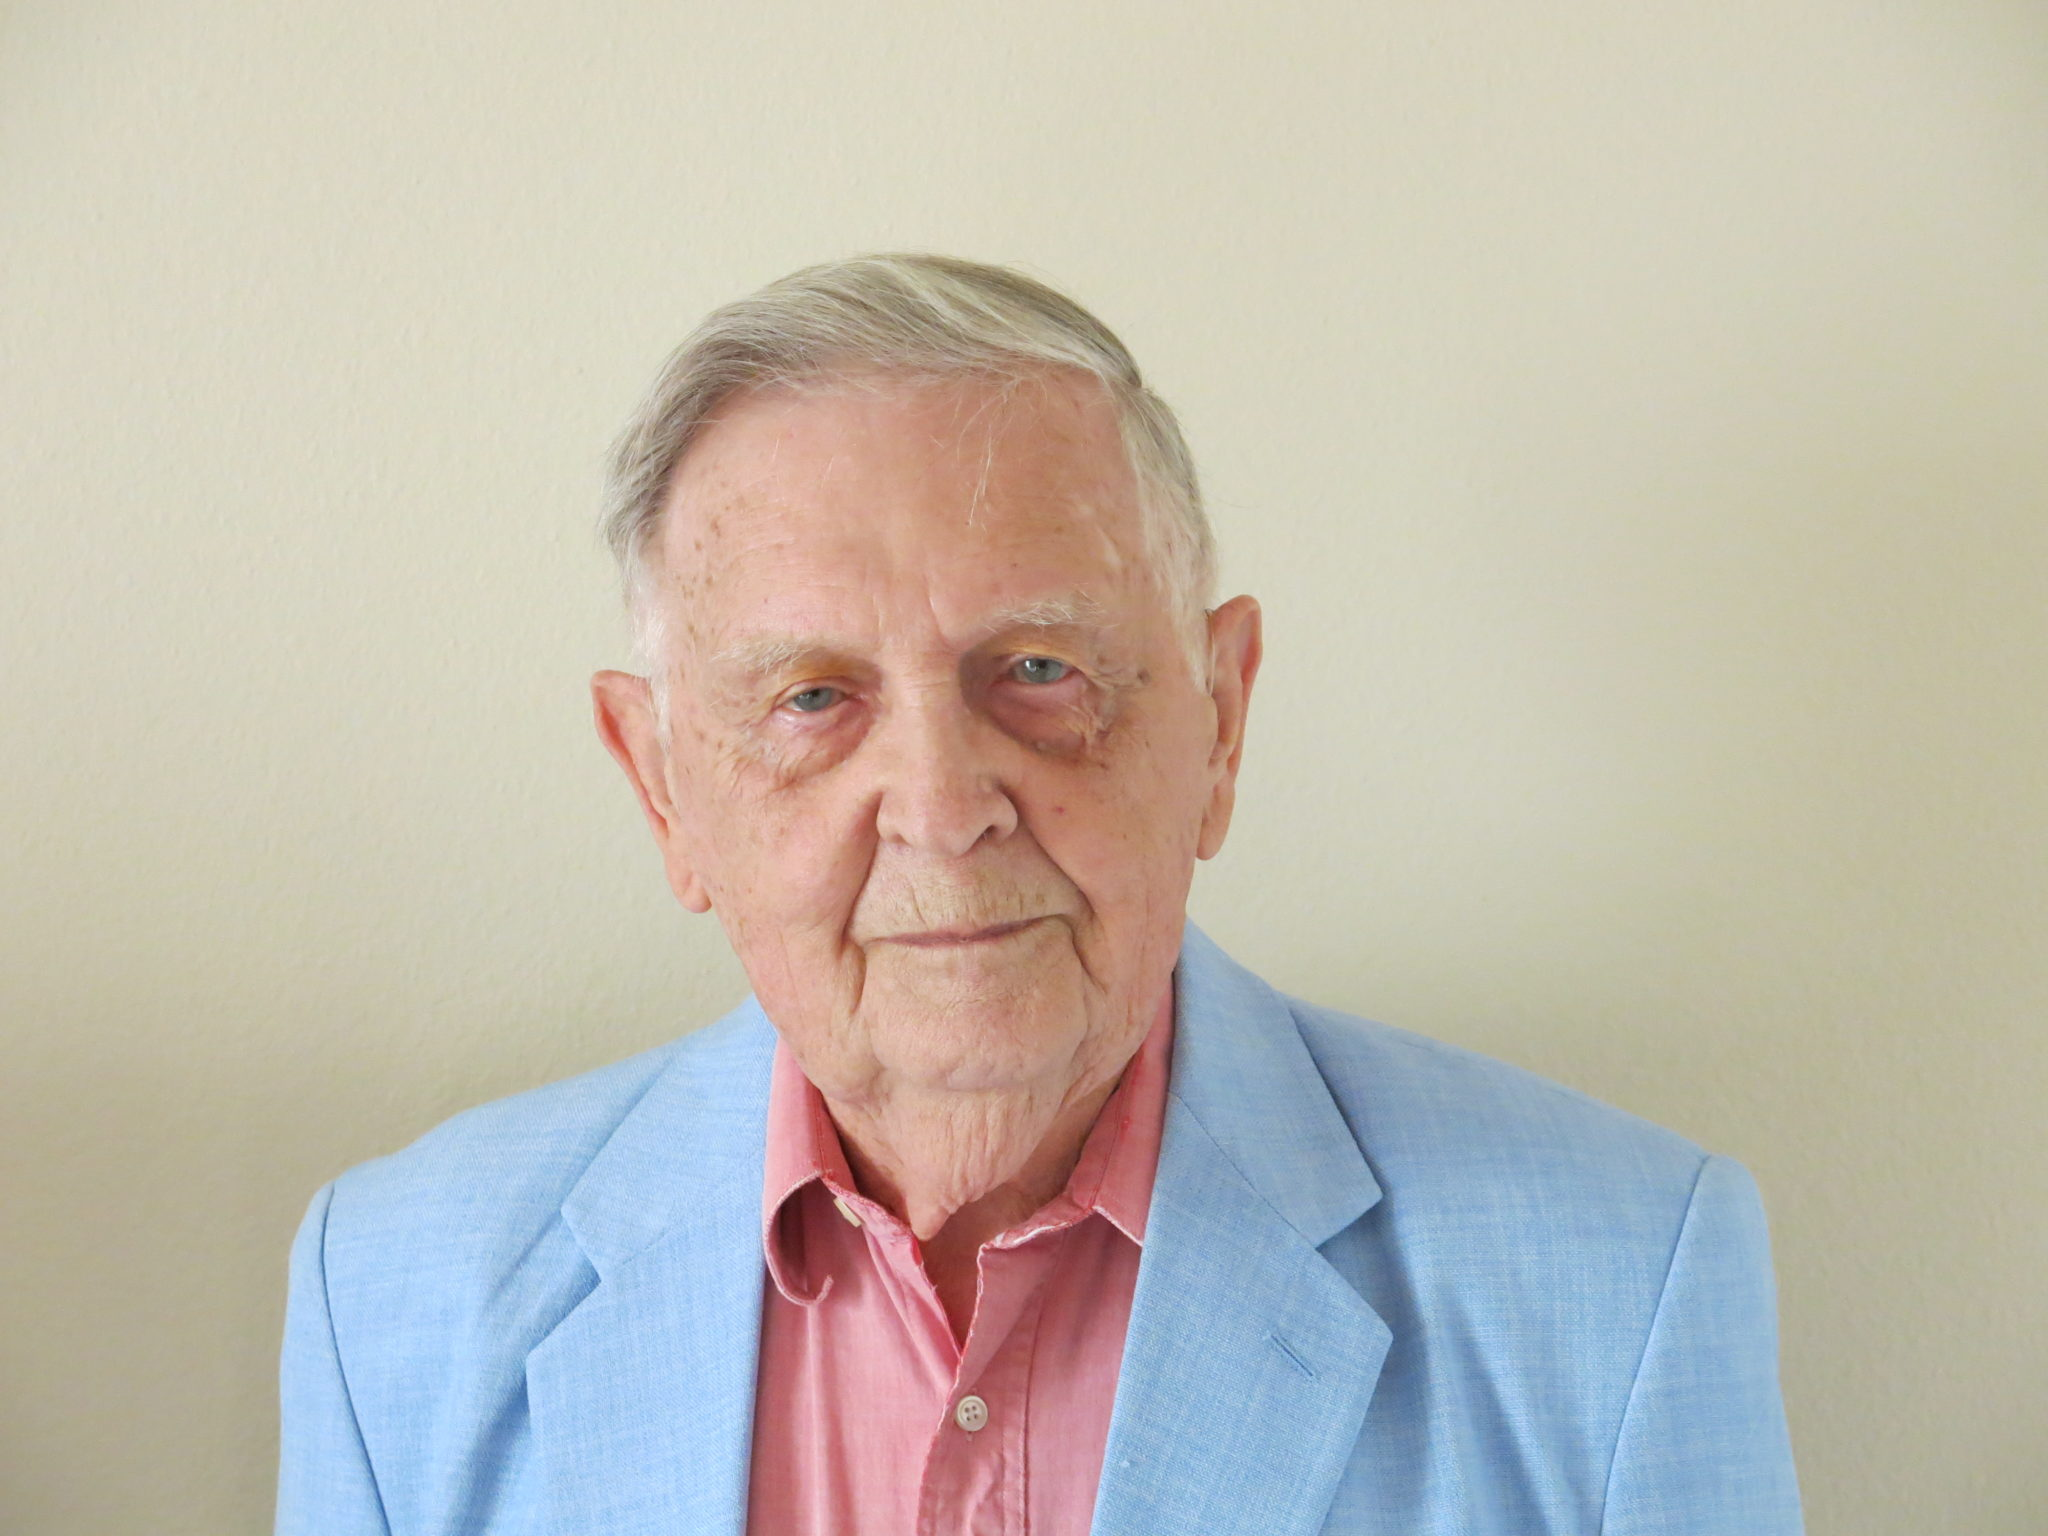 Elderly Caucasian man in light blue sport coat